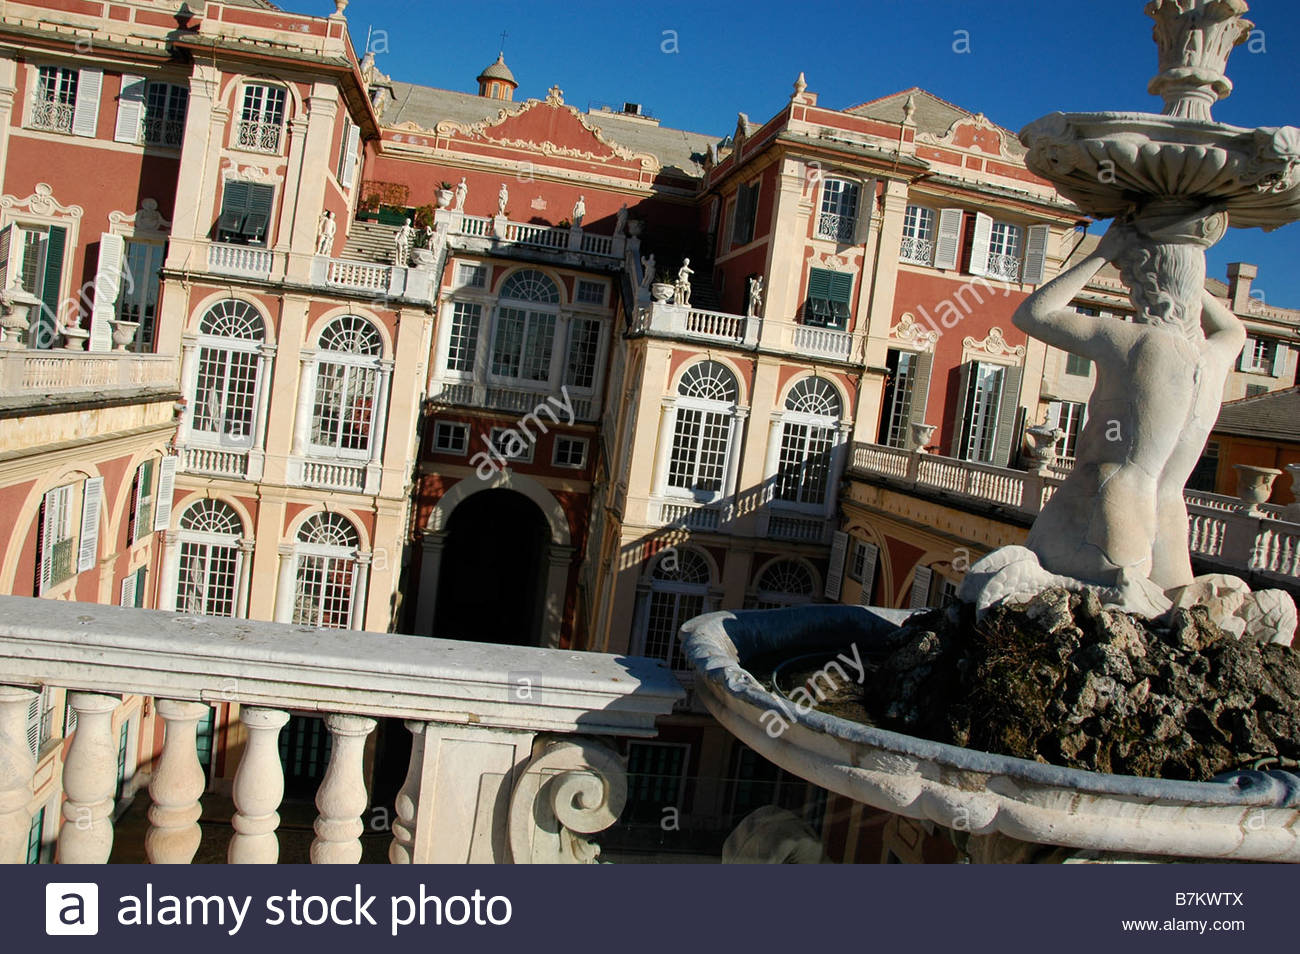 The Palazzo Reale (Royal Palace) in Genoa - Stock Image